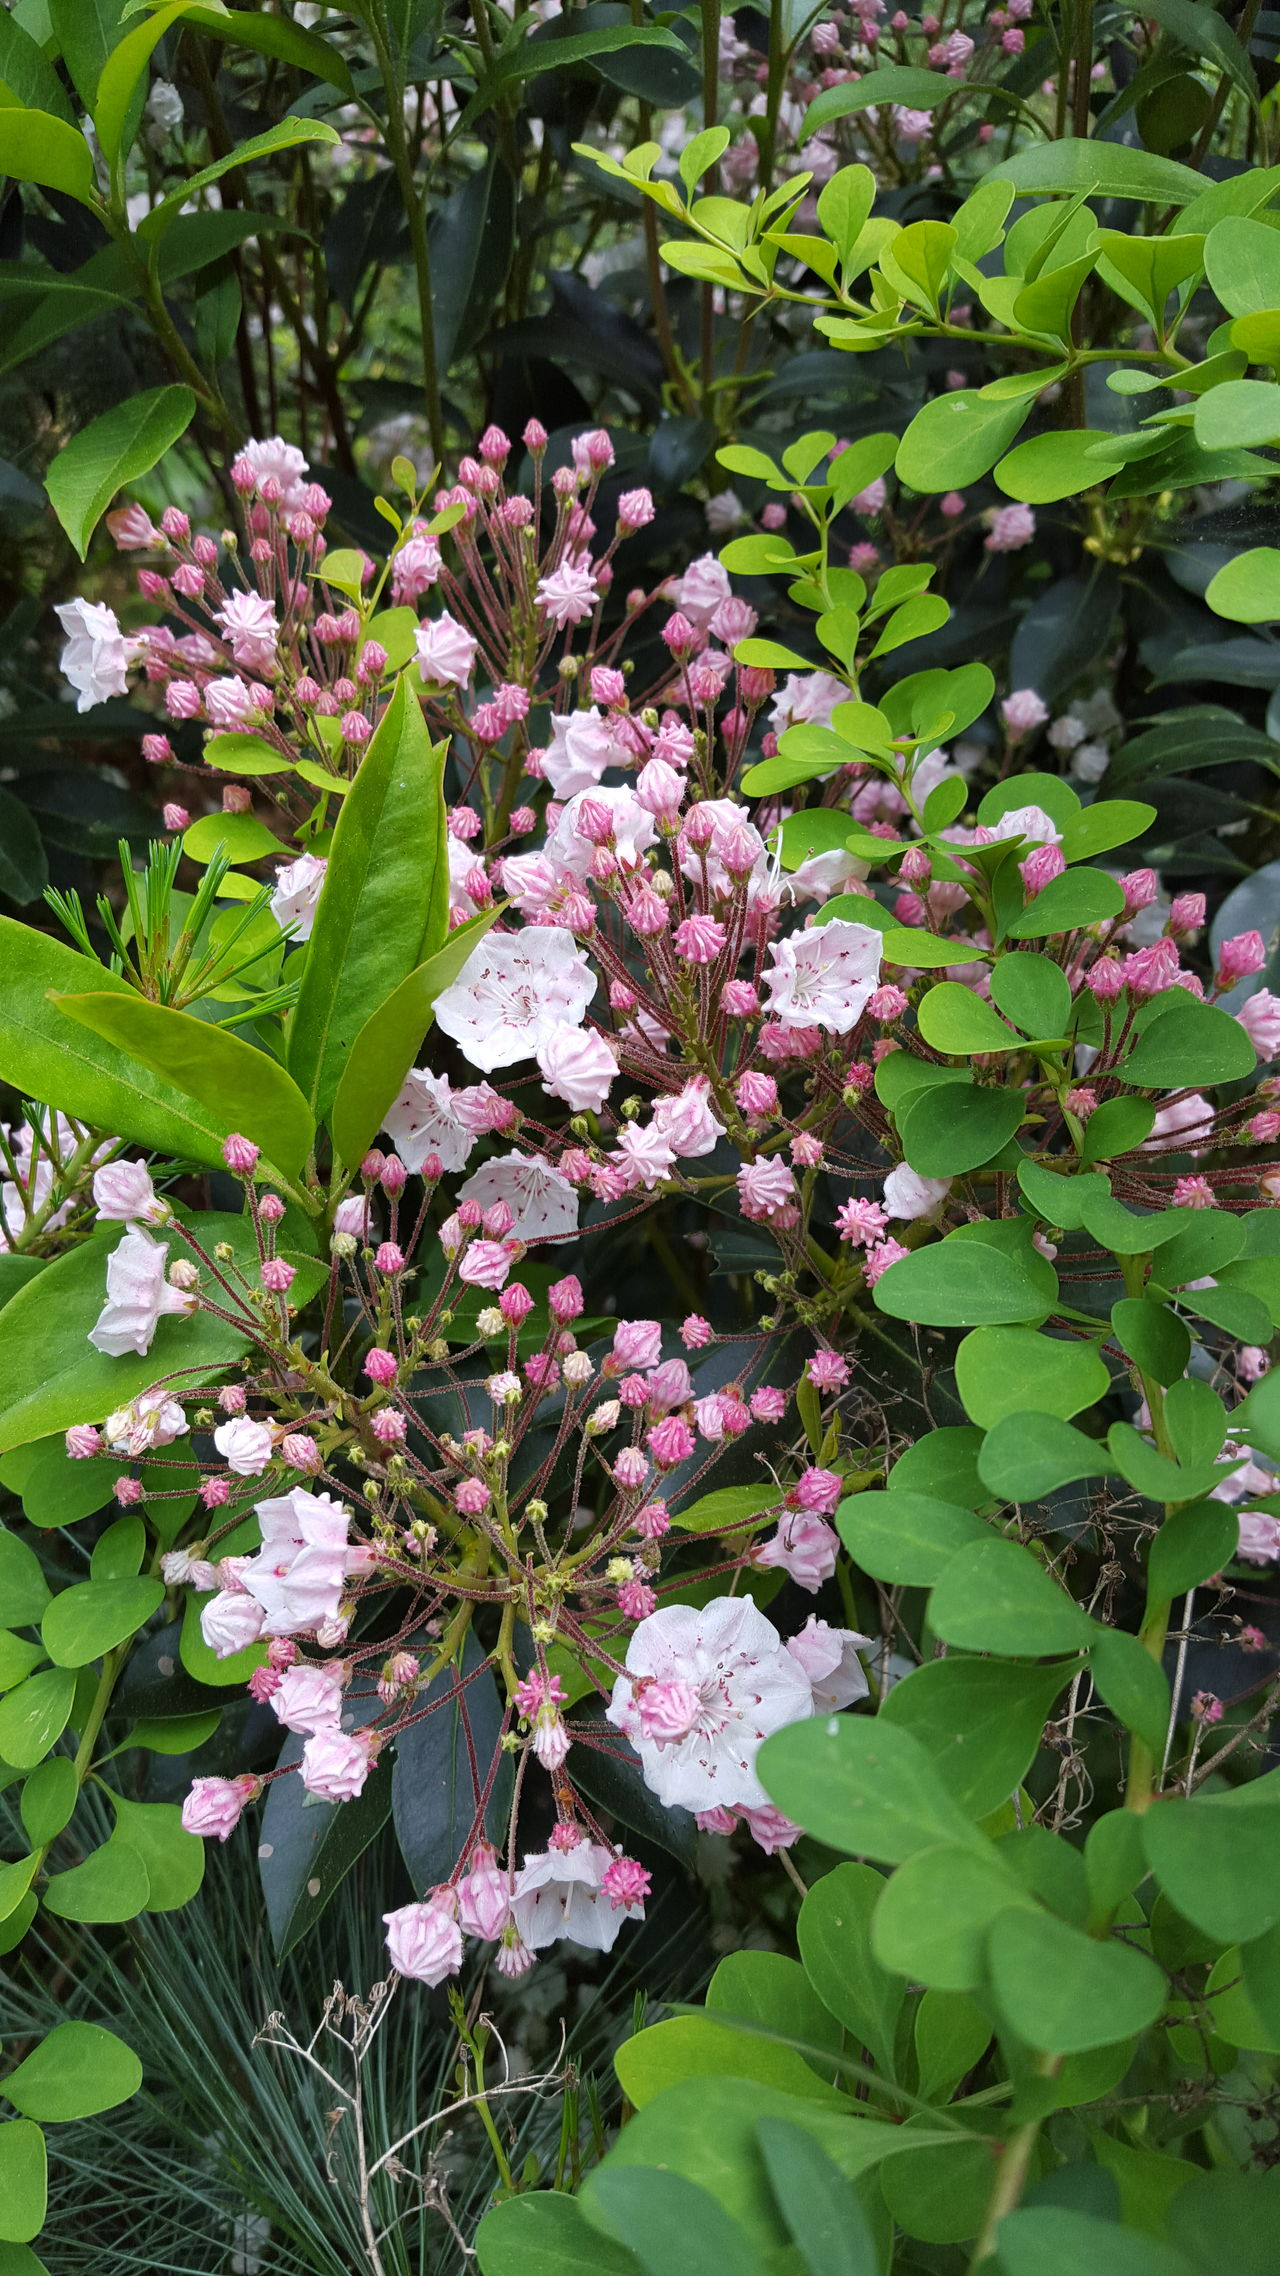 Growth Nature Flower Beauty In Nature Tree Freshness Blossom Green Color Purple Plant Outdoors Springtime Branch Day No People Fragility Lilac Rhododendron Flower Head Close-up Pink Pink Color Hiking❤ Riders Park Tranquil Scene